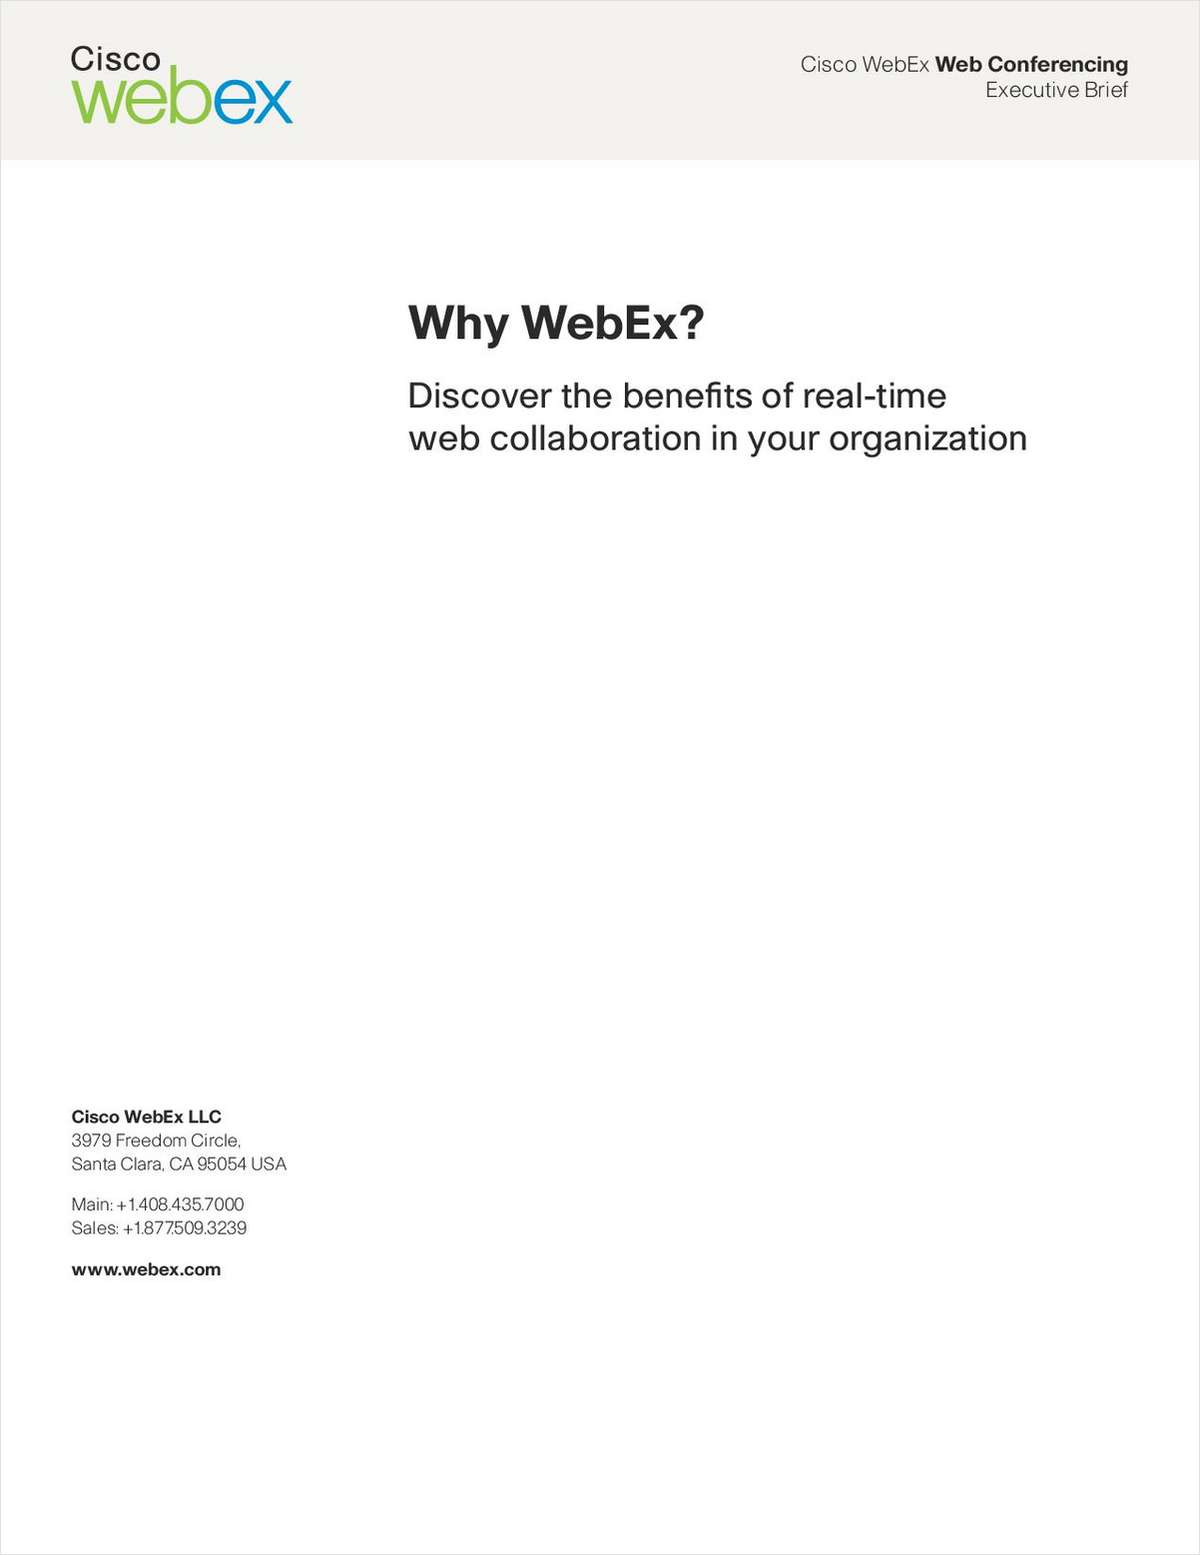 Why WebEx? Discover the Benefits of Real-Time Web Collaboration in Your Organization